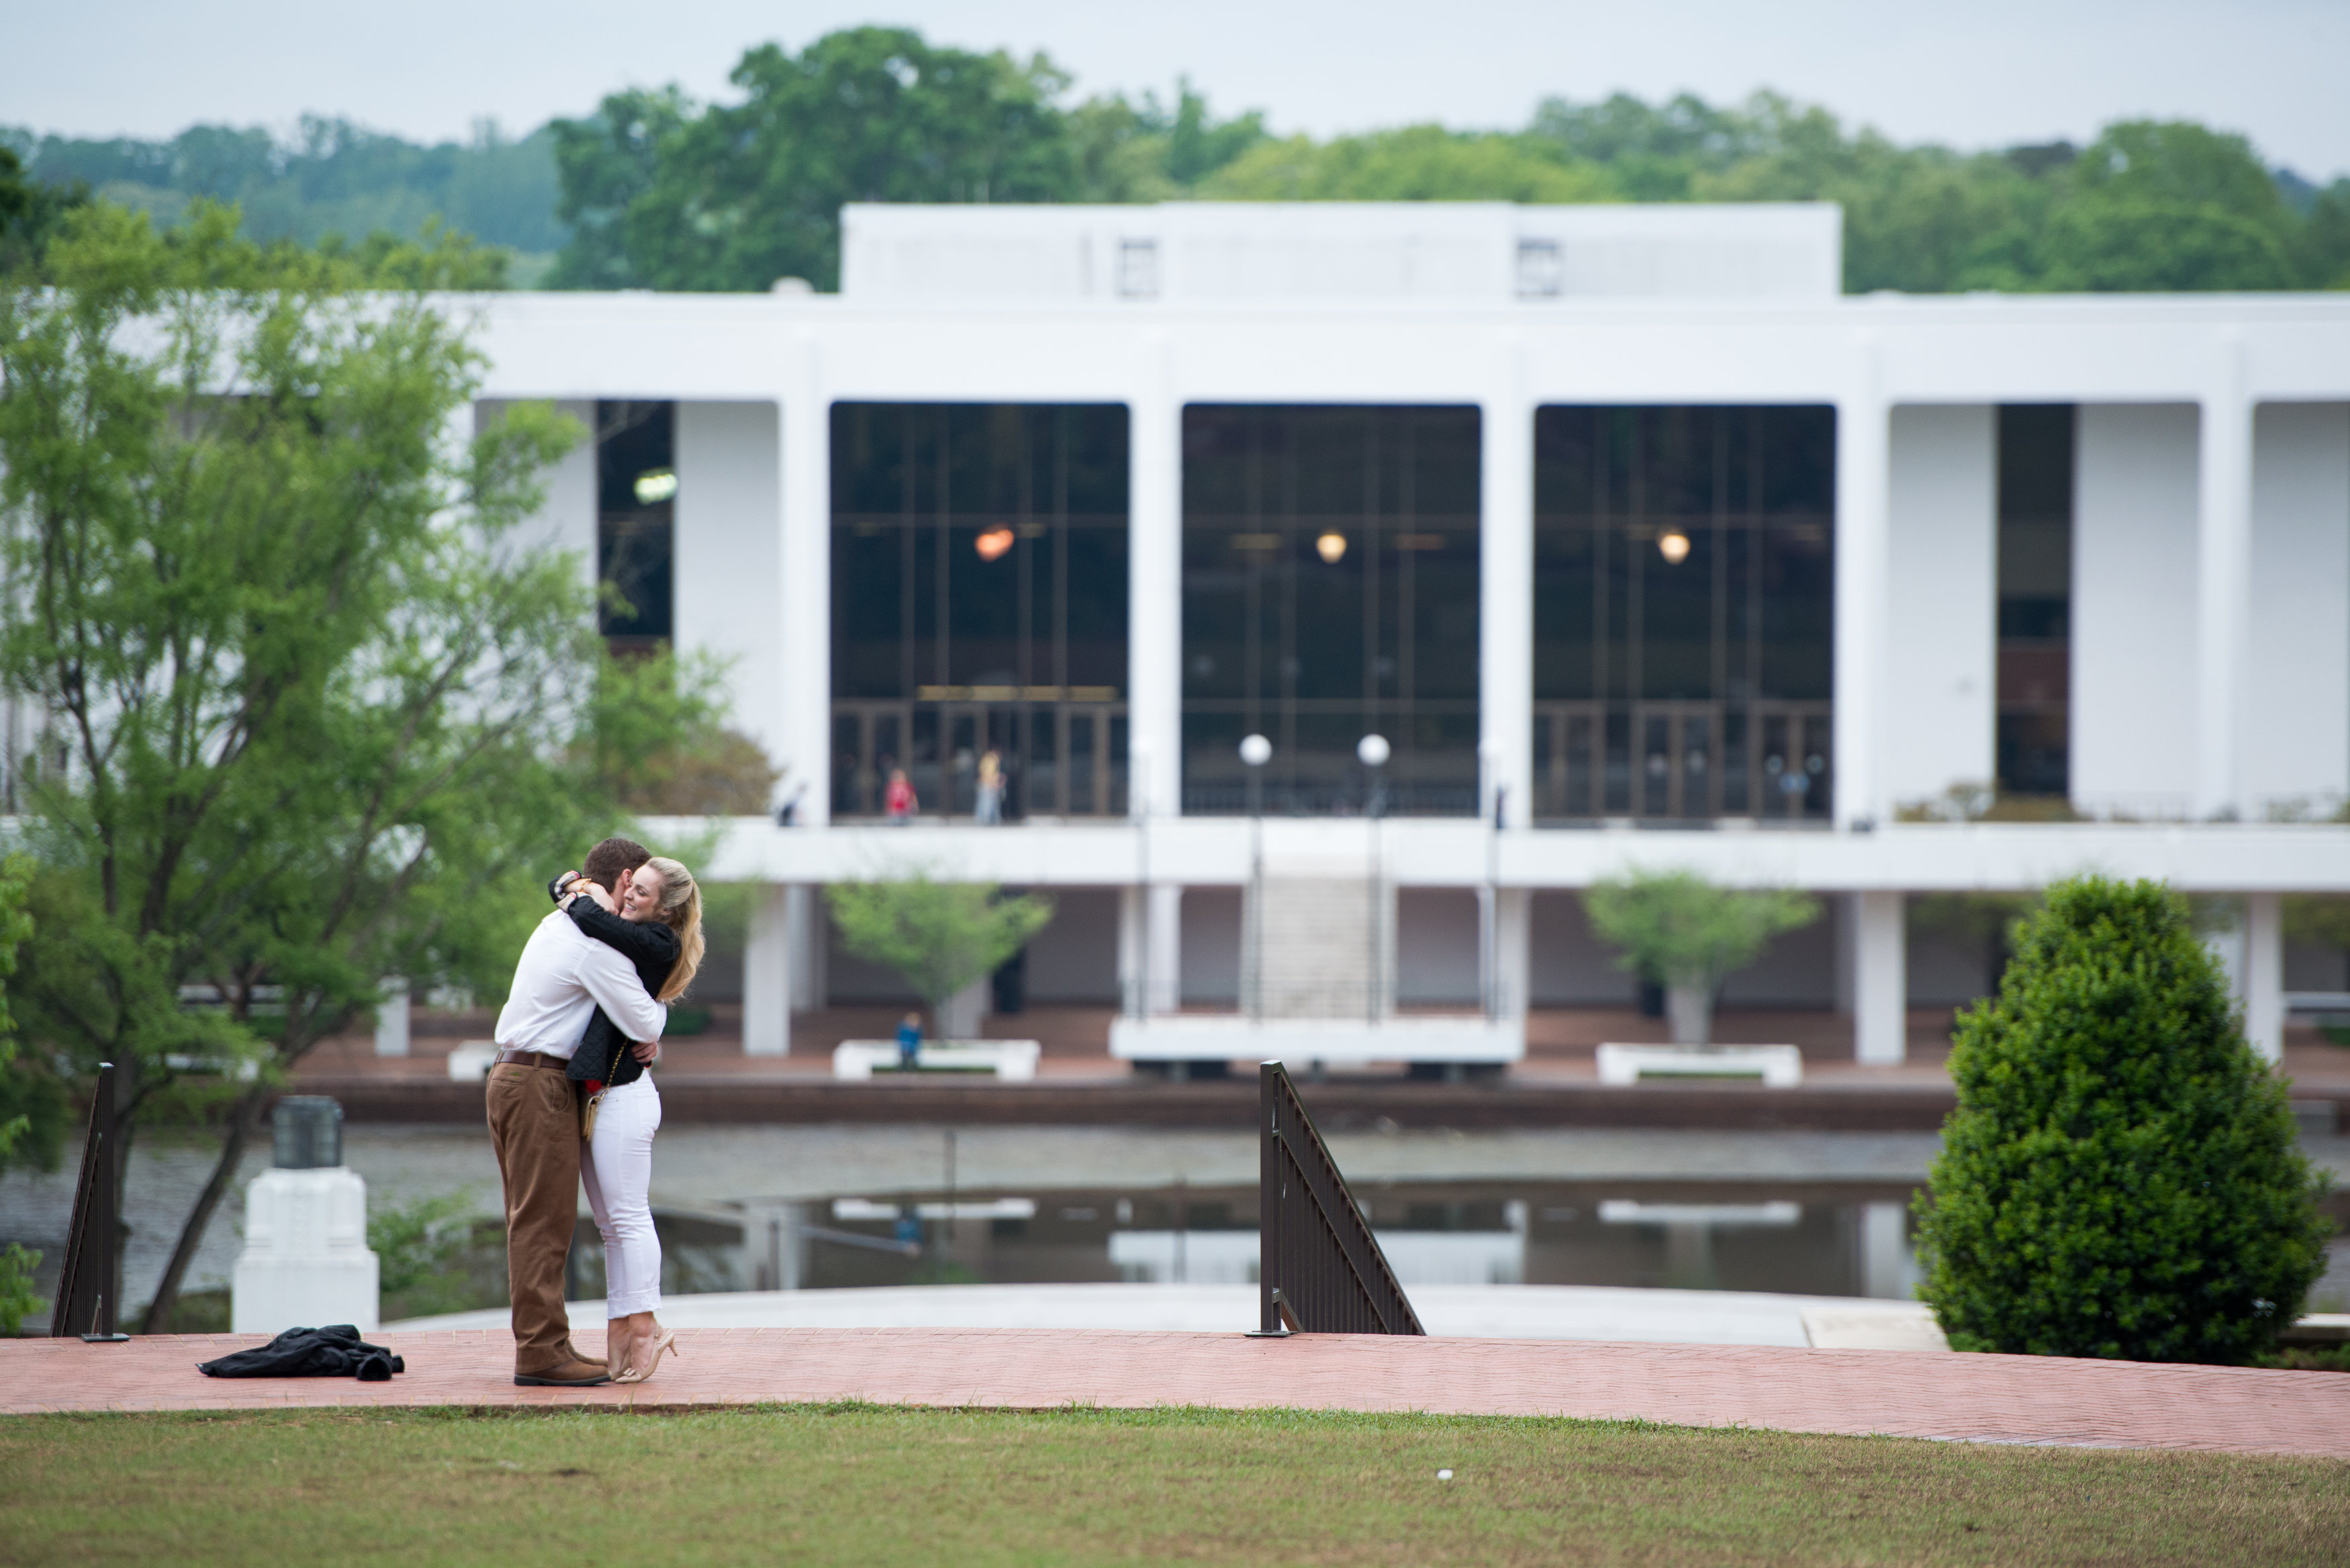 Image 10 of Clemson Marriage Proposal